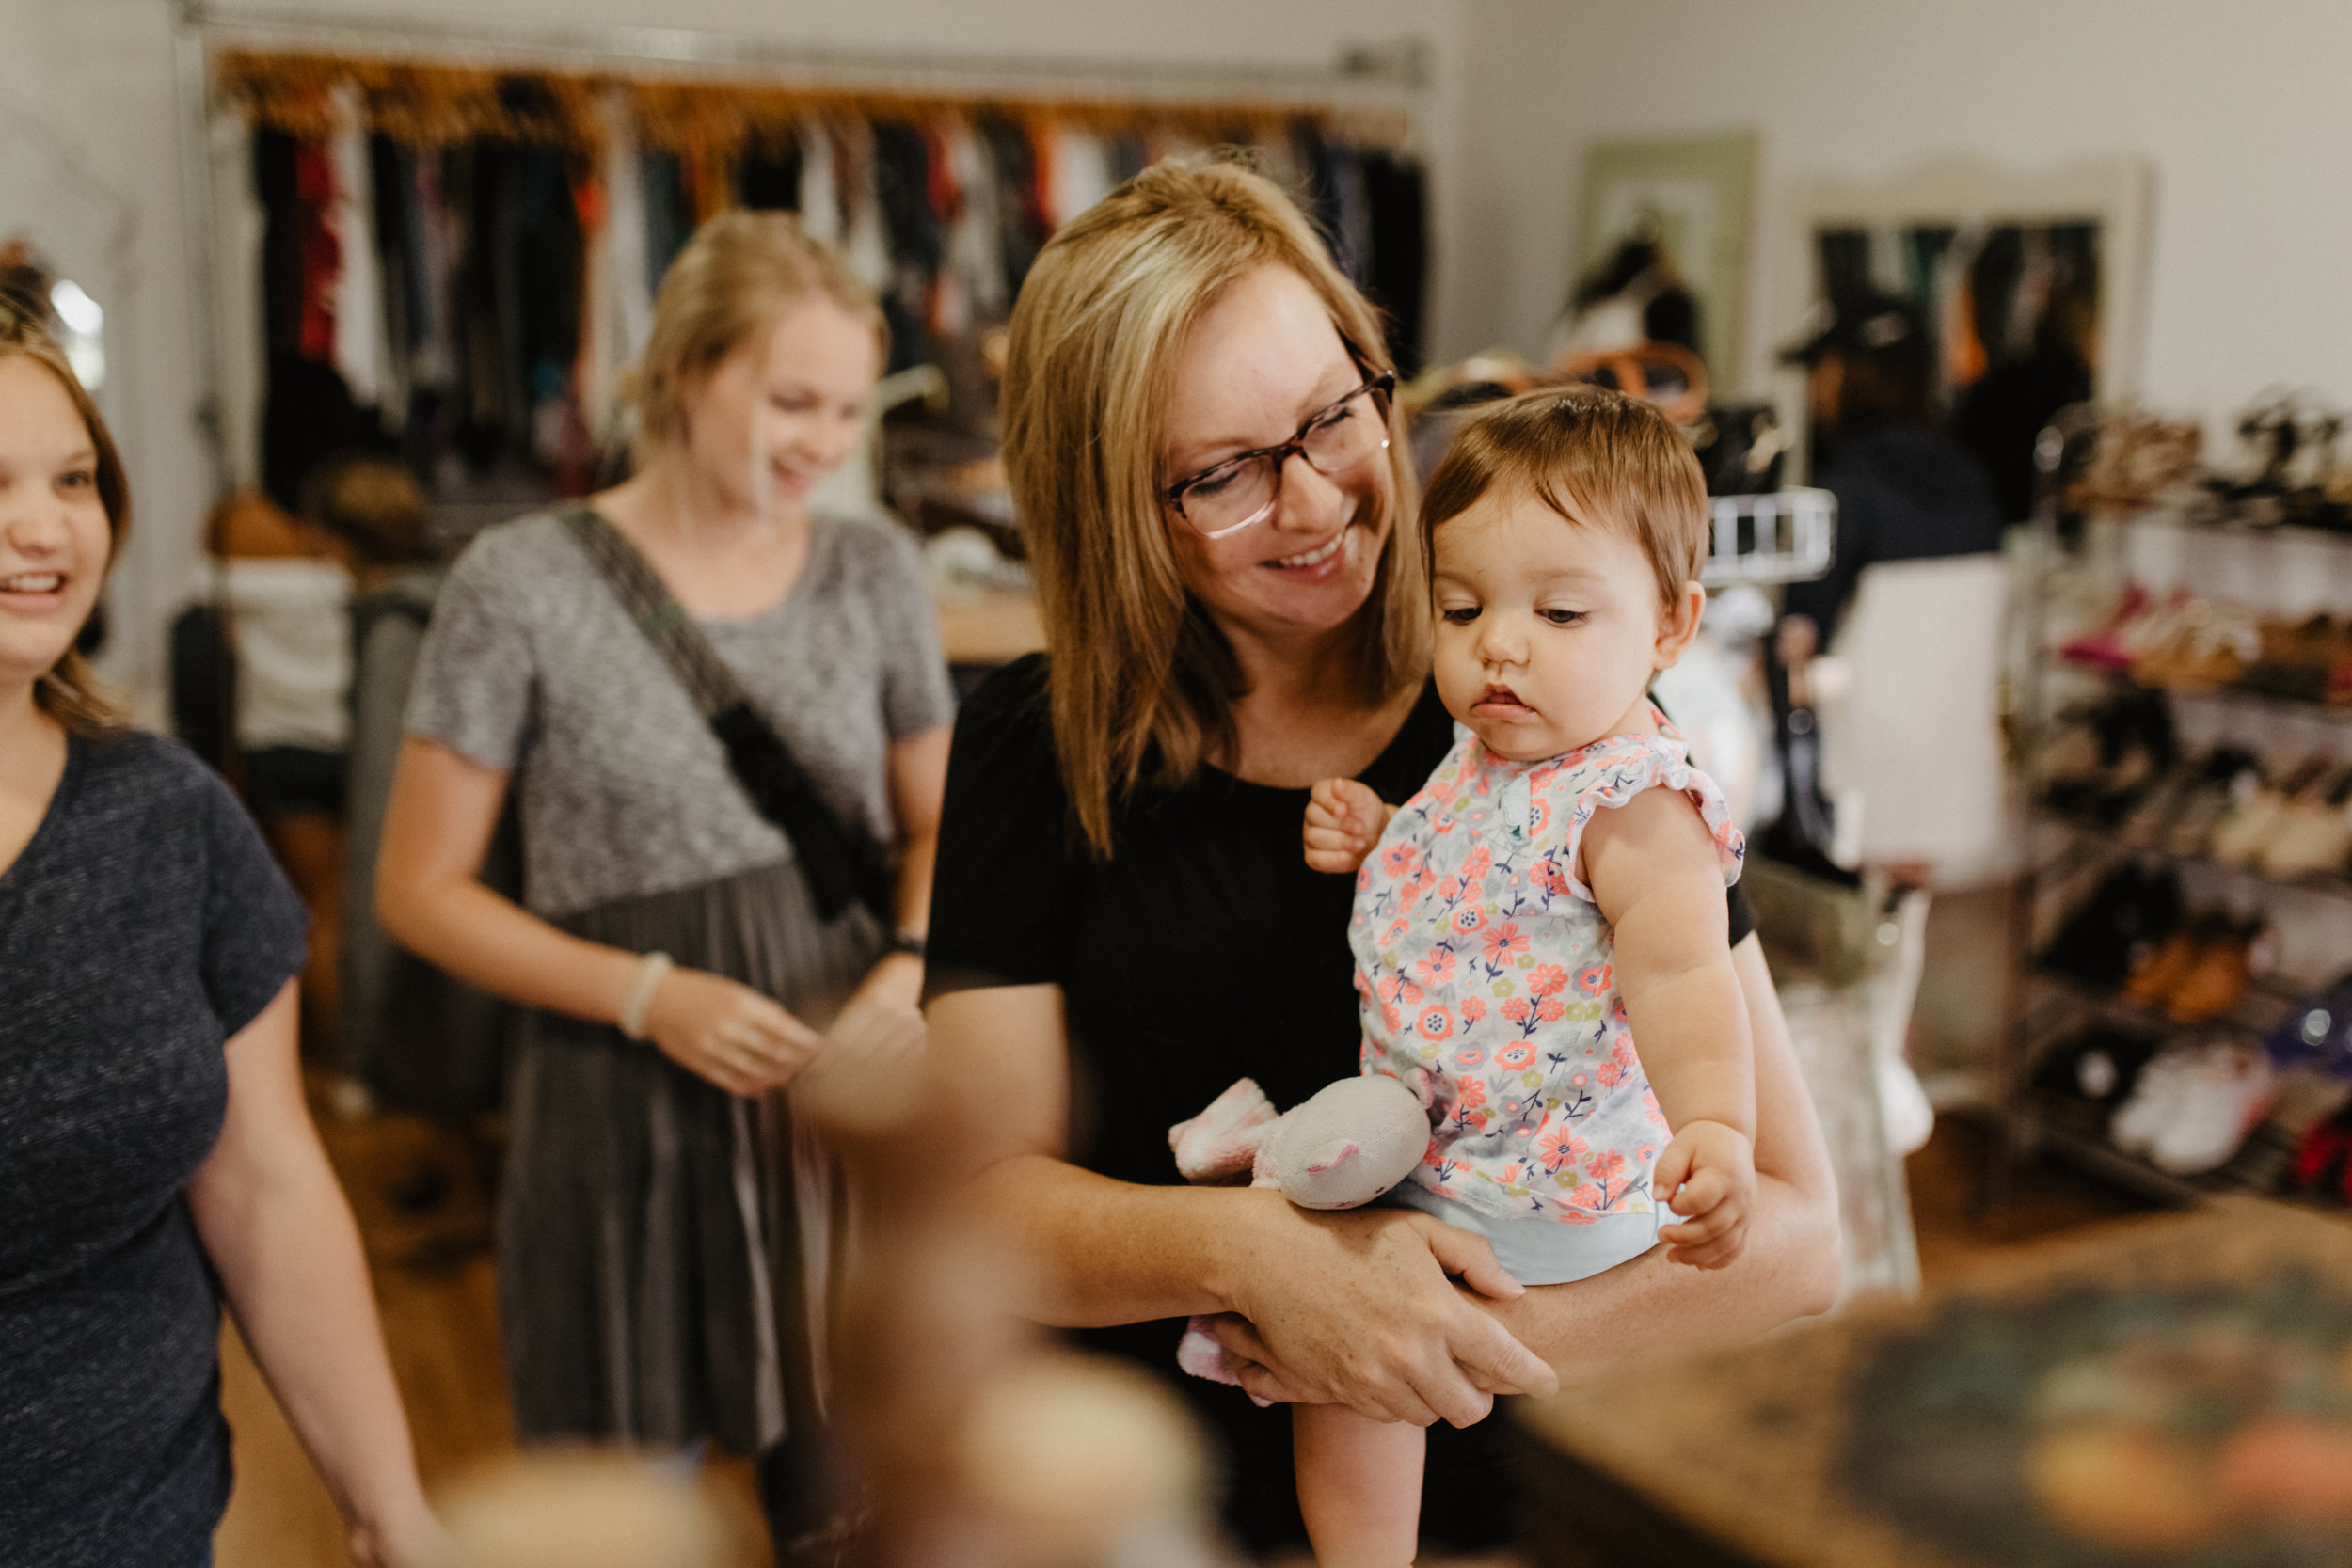 My-Sisters-Closet-Grand-Opening-Local-Commercial-My-Sisters-Closet-West-Michigan-Grand-Opening-23